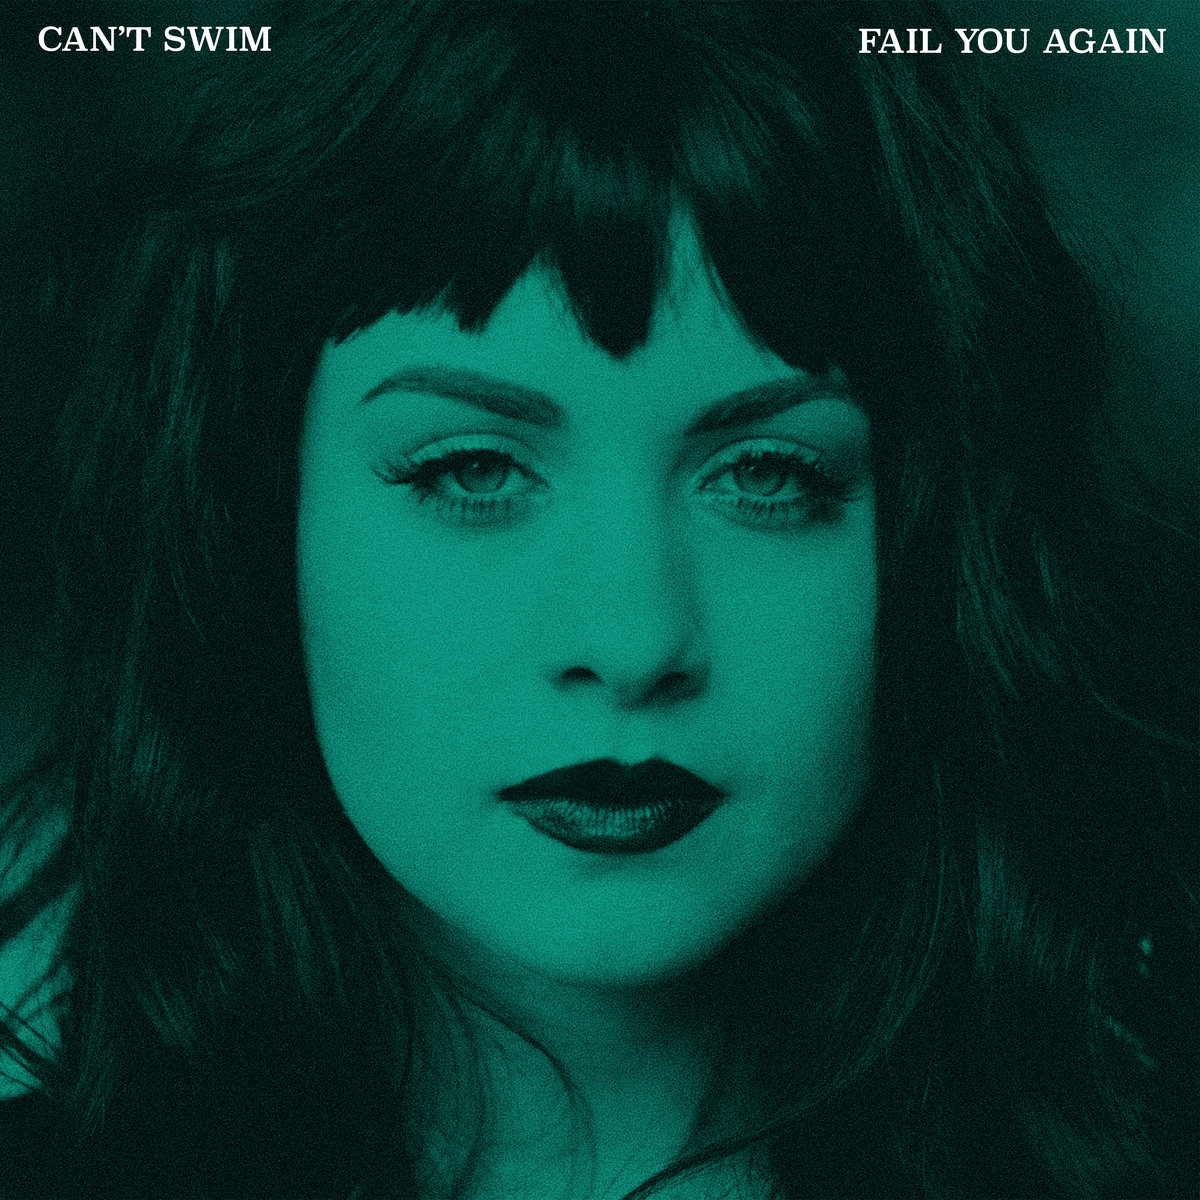 cant swim - fail you again